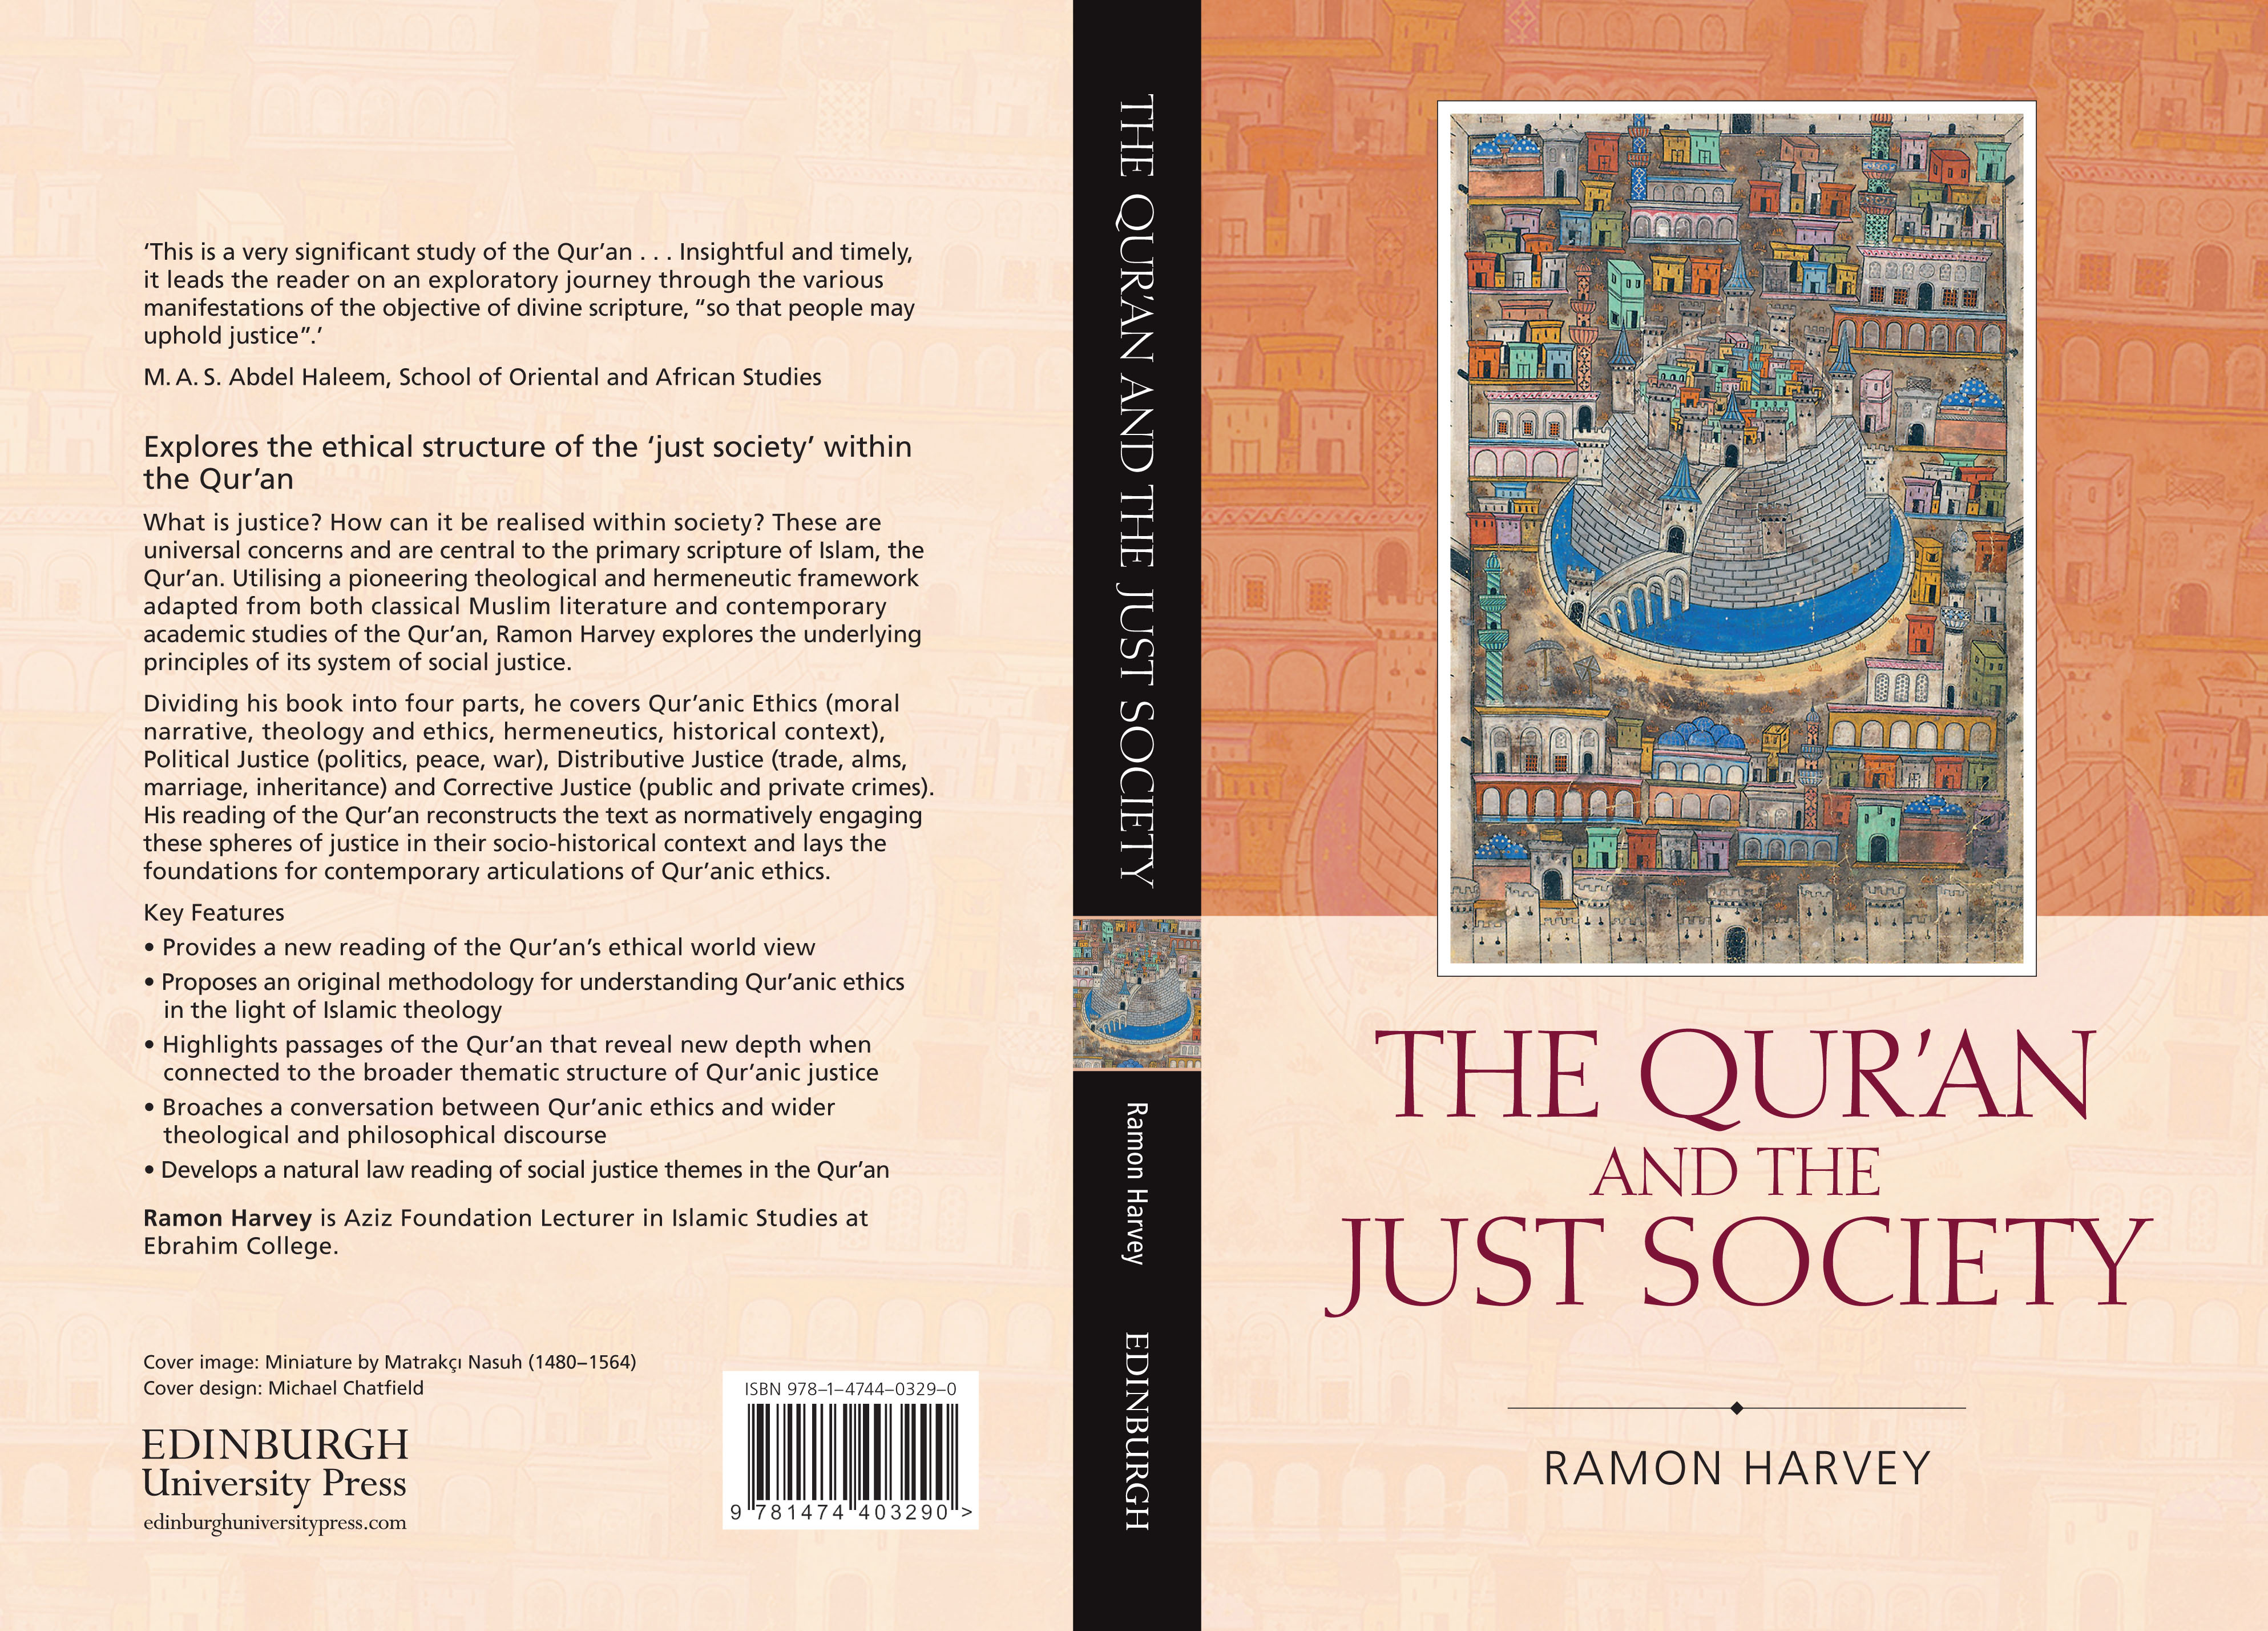 qur anic guided business ethics lessons from Based on certain qur'anic the first part of the article deals with the qur'anic and sunnatic conceptions of business work ethics from an islamic perspective.